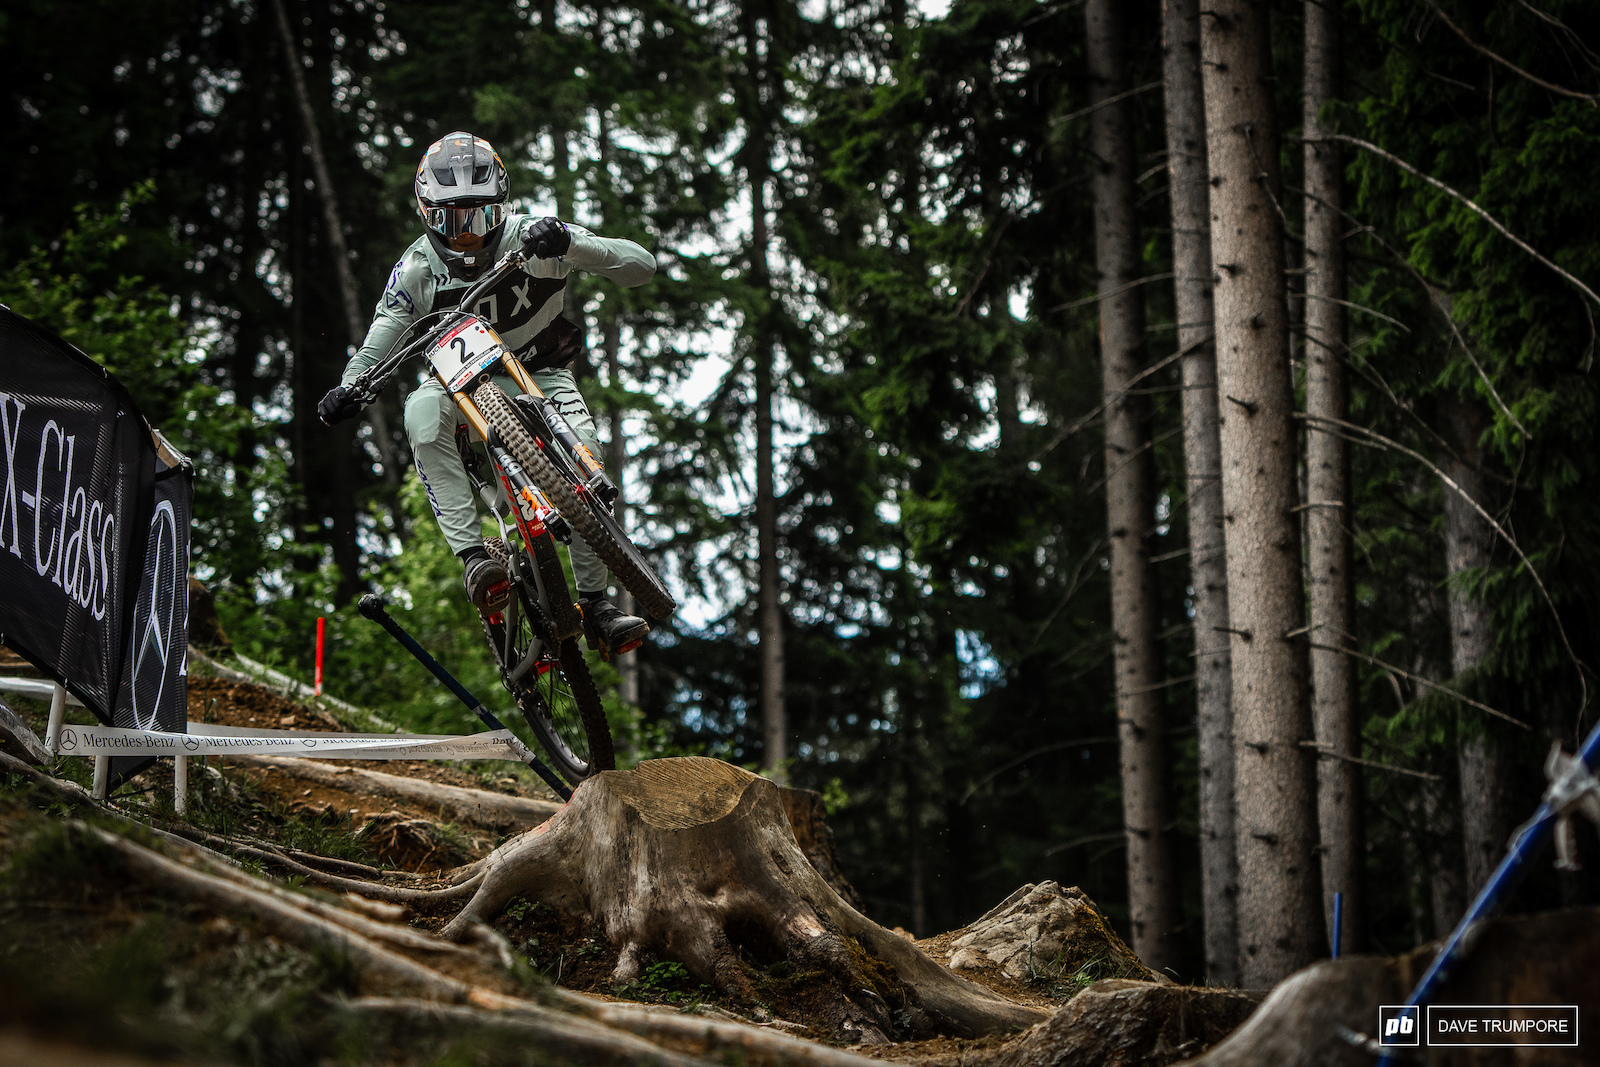 Last weeks second place finisher Loris Vergier is also looking quick on track in Leogang.